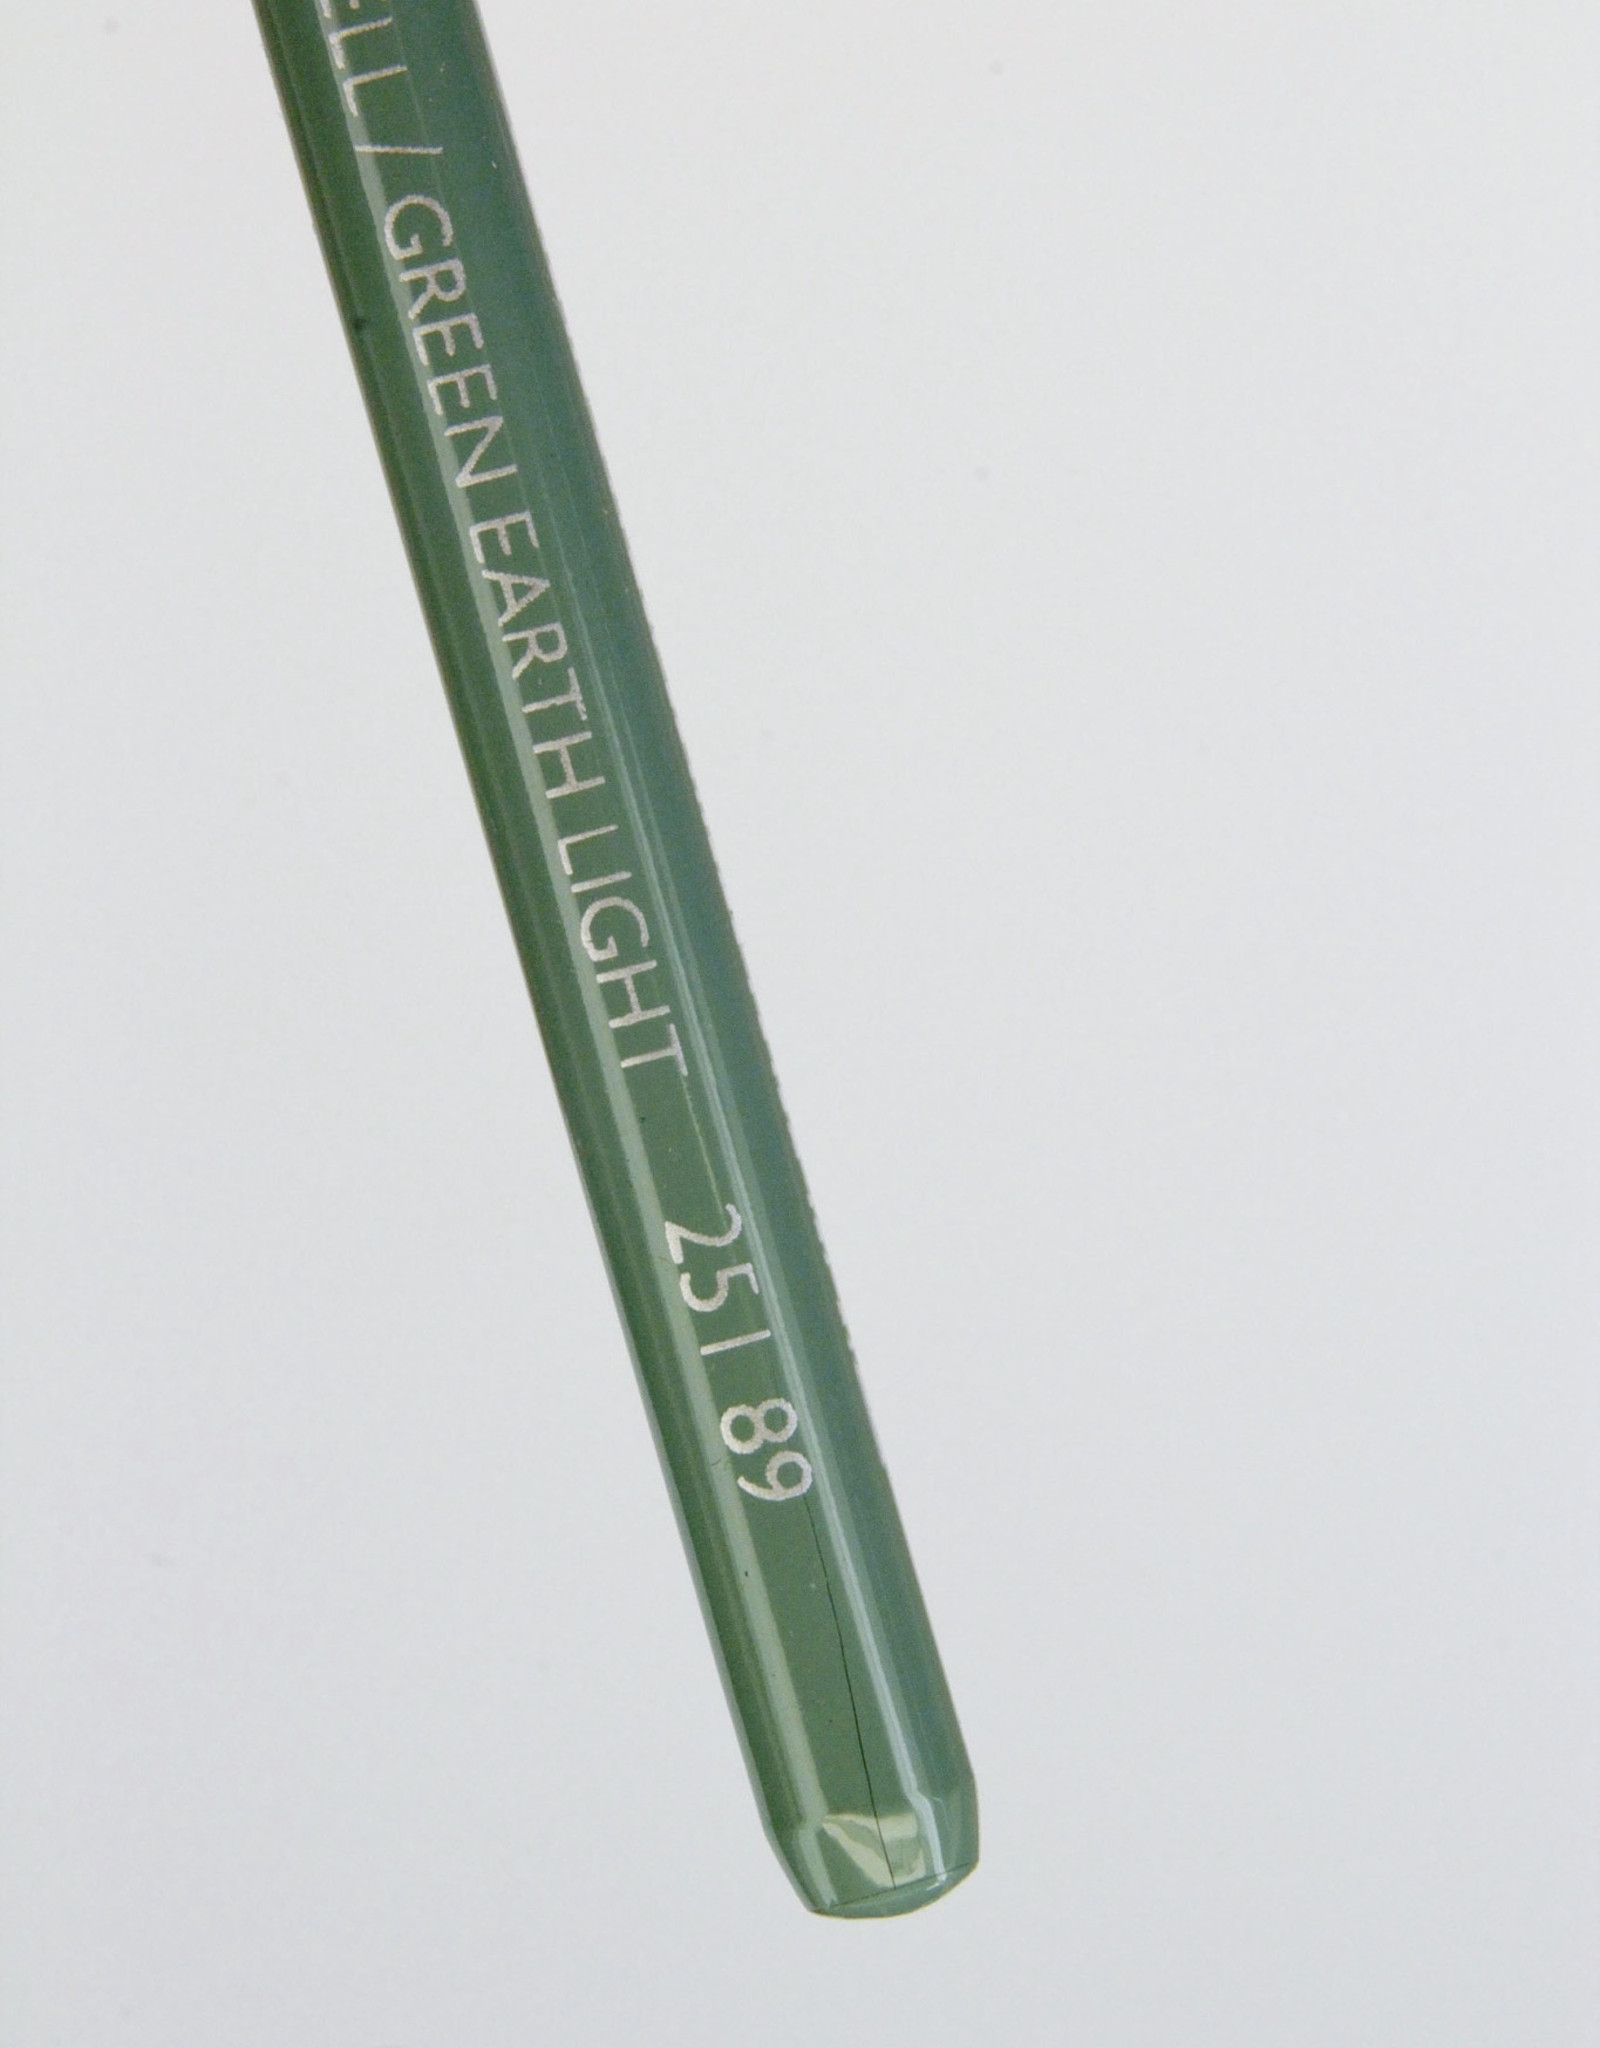 Cretacolor, Aqua Monolith Pencil, Green Earth Light